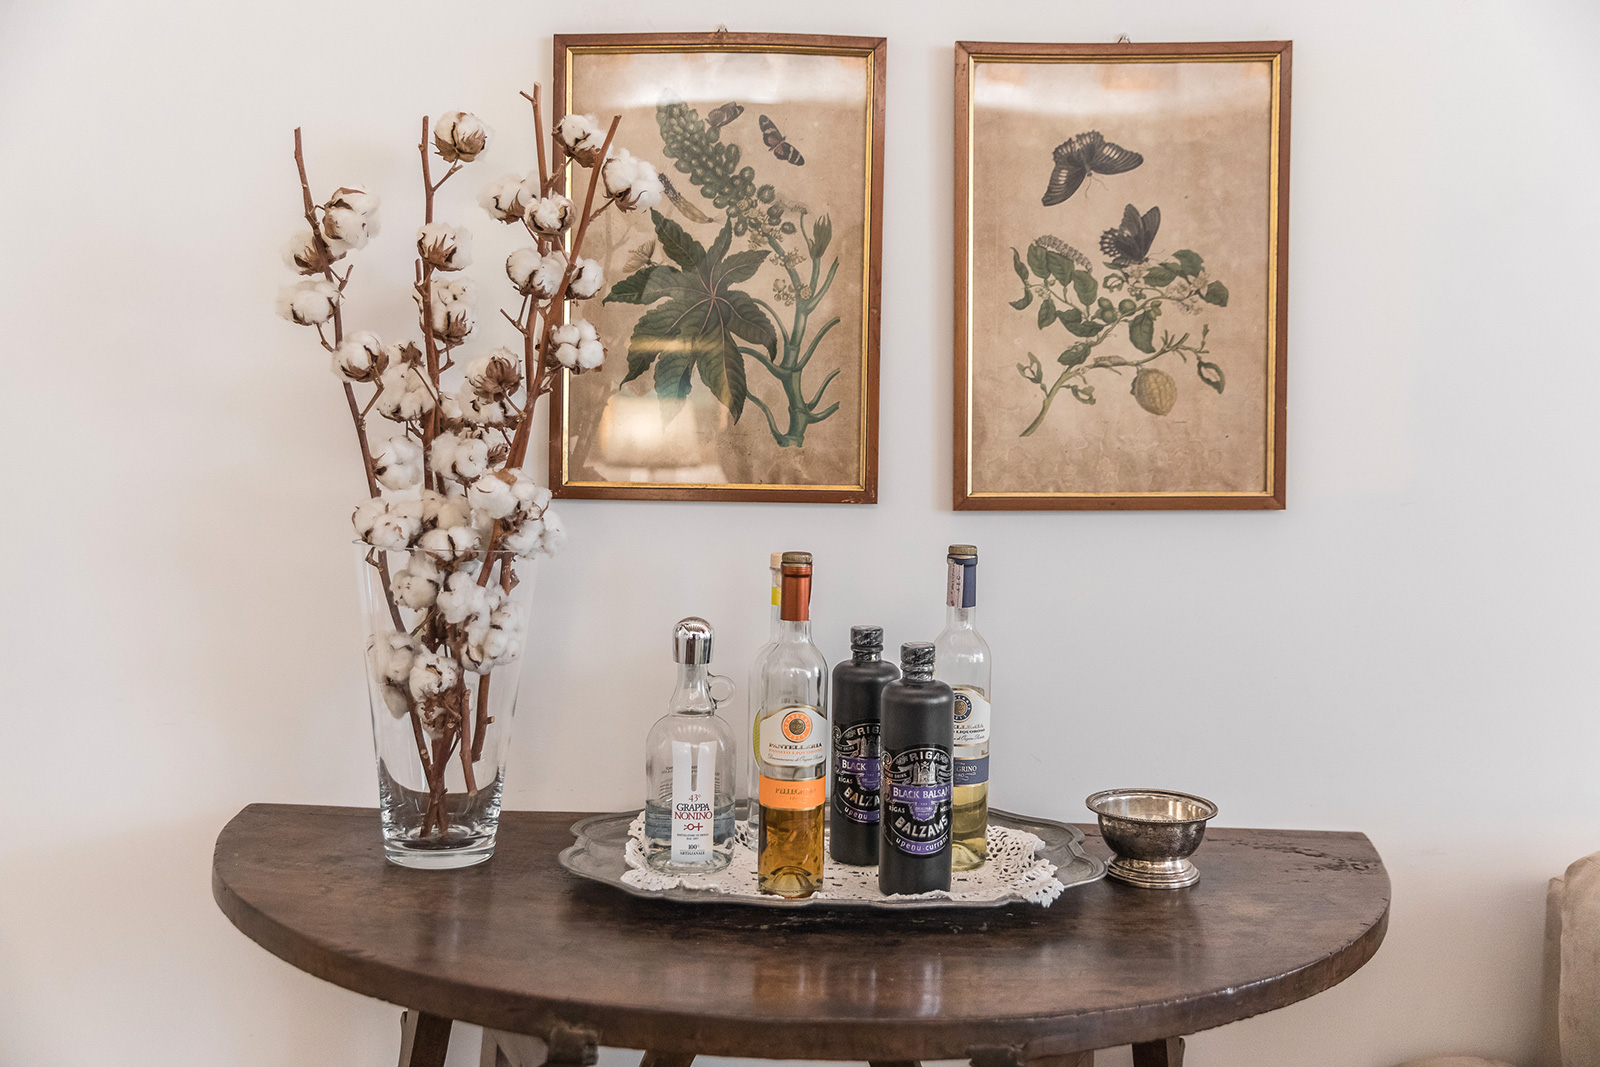 the caring owner always leave some spirits for the guests of the Querini apartment